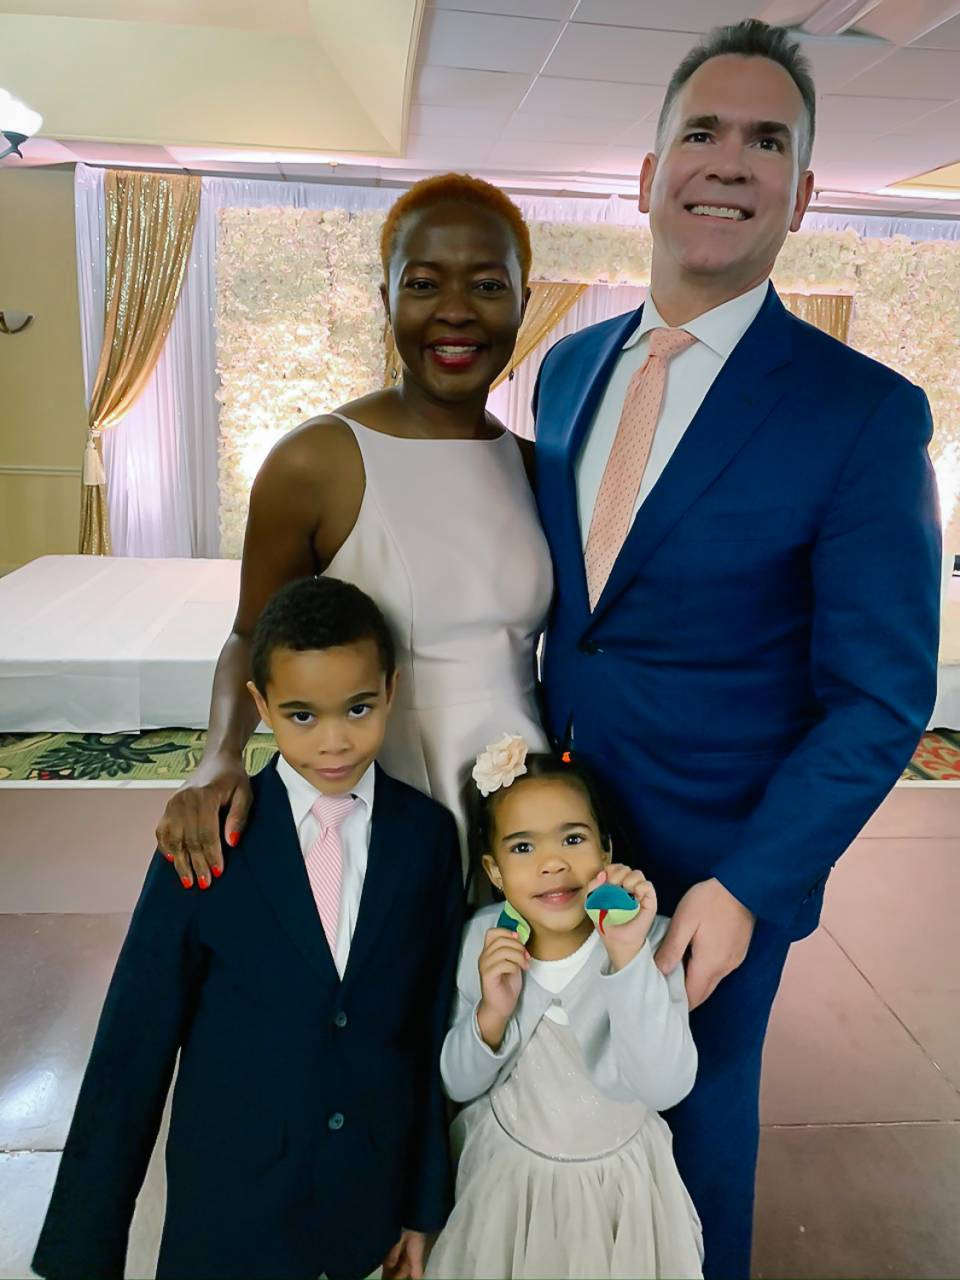 Diane Obryon and her family. They have made 5 international moves together!